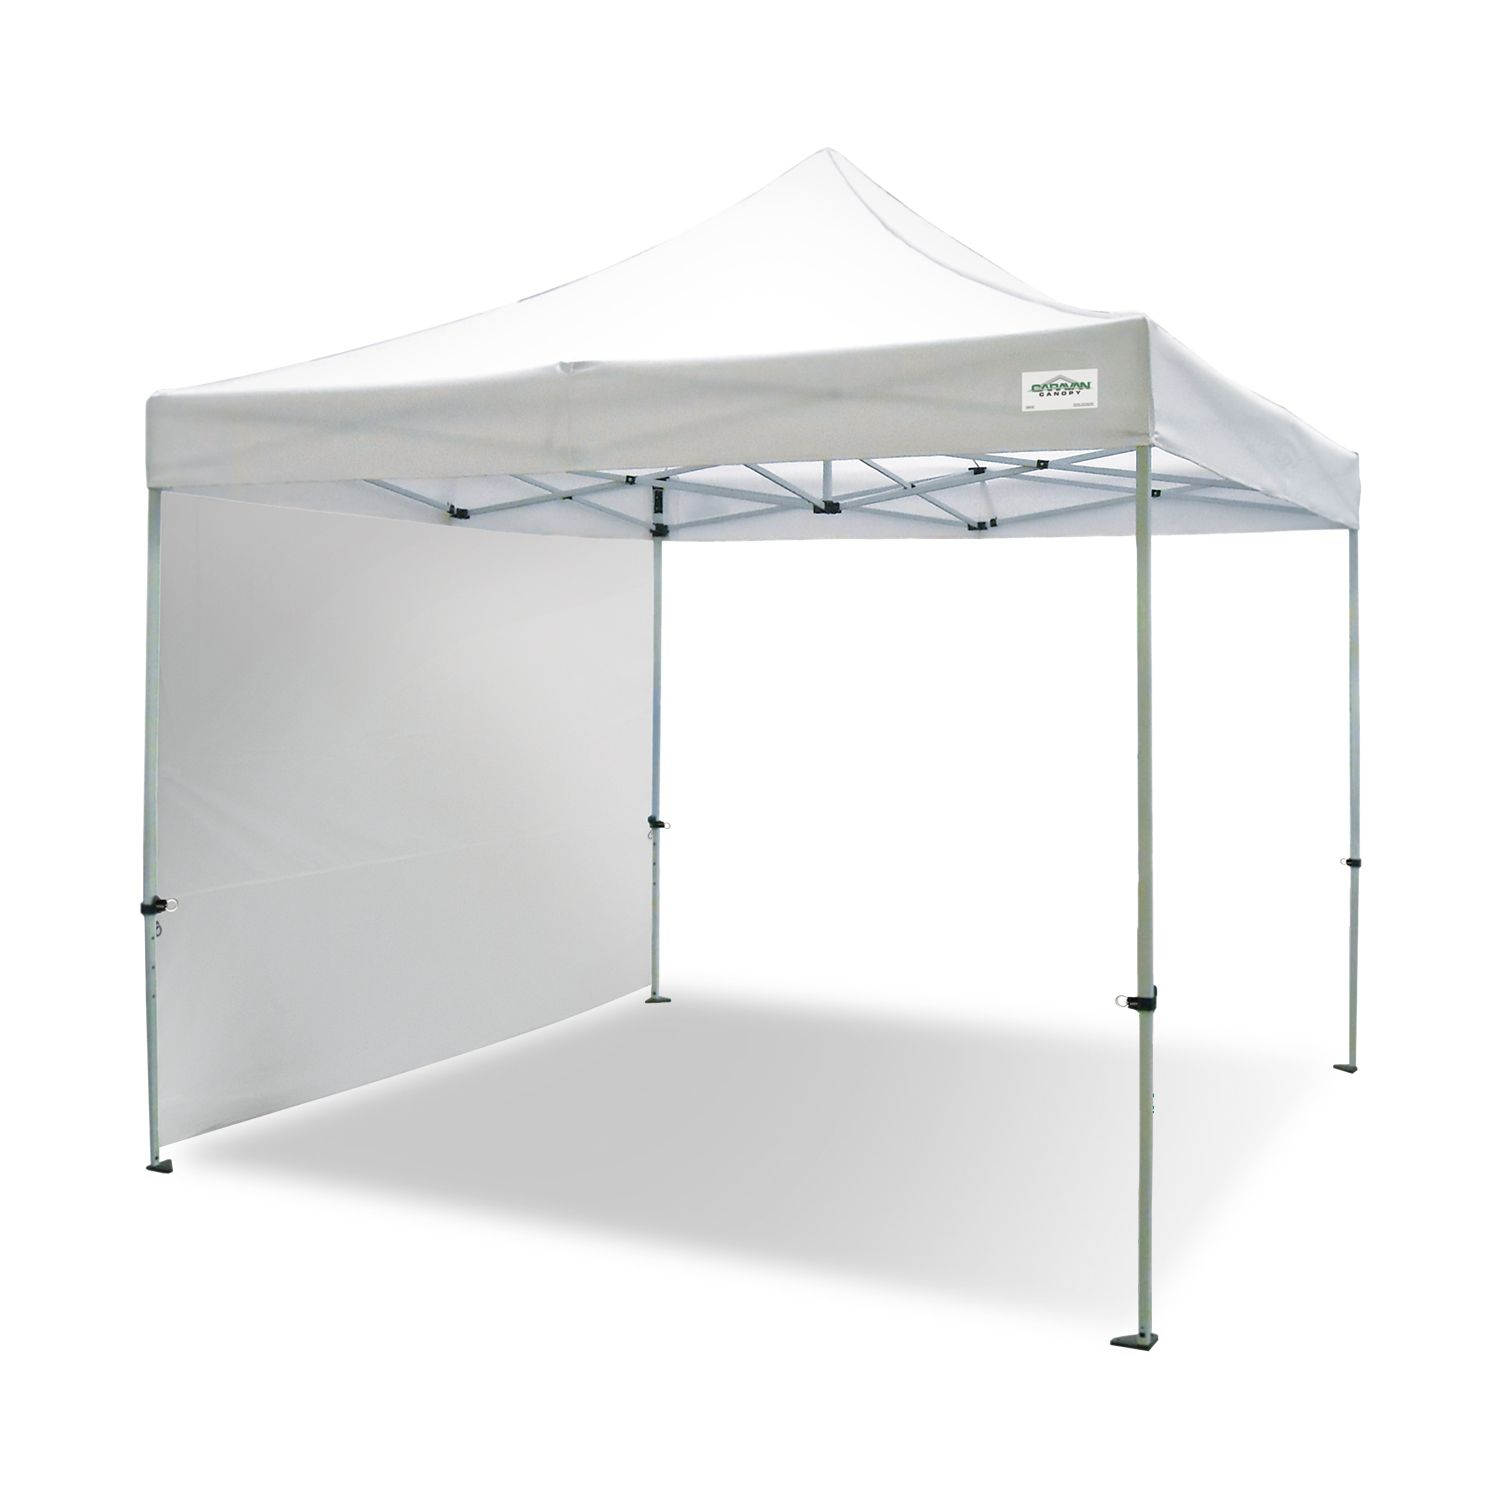 Titanshade 10x10 10x15 Instant Canopy Kit White Steel Frame Ez Ups Instant Canopy Canopy Steel Frame